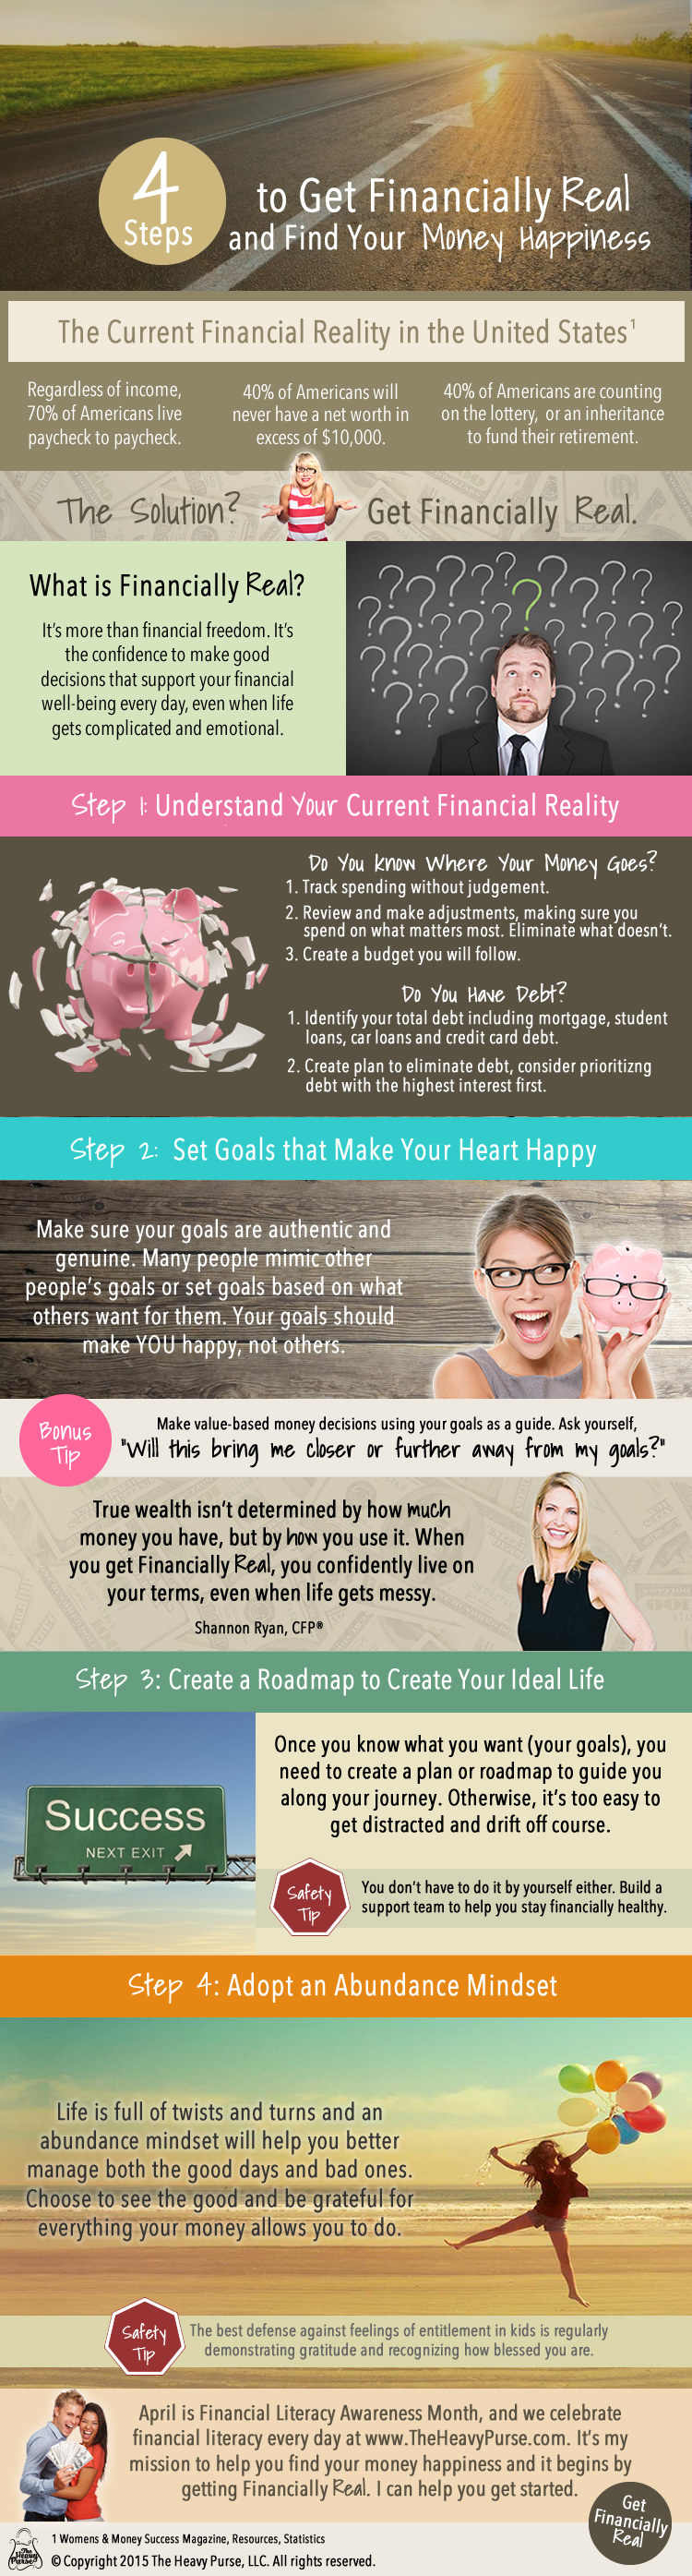 4 Steps to Get Financially Real and Find Your Money Happiness #Infographic | www.TheHeavyPurse.com